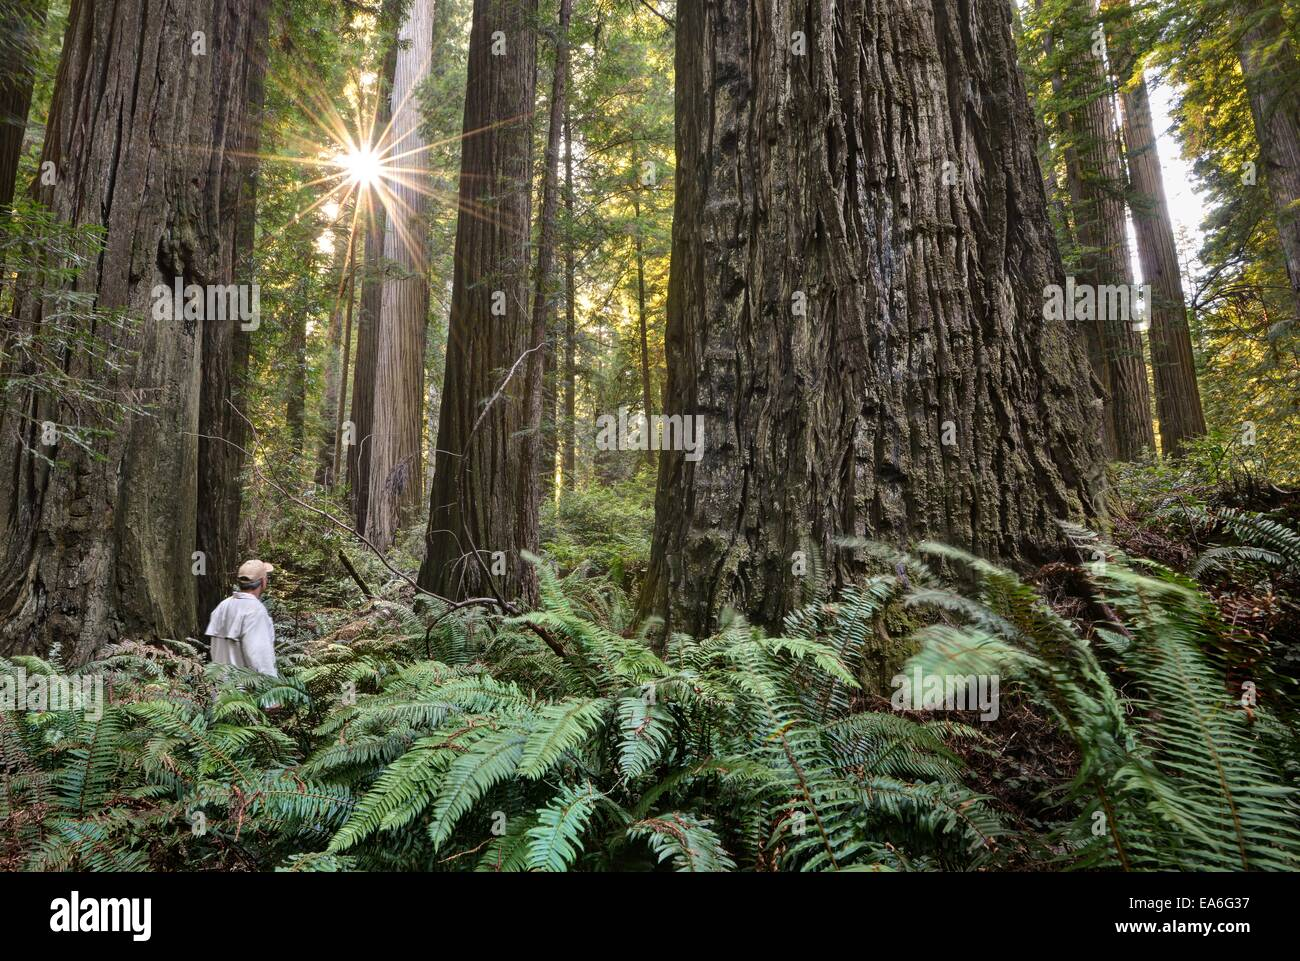 USA, California, Redwood National (and State) Park, Hiker Among Giant Redwood Trees - Stock Image